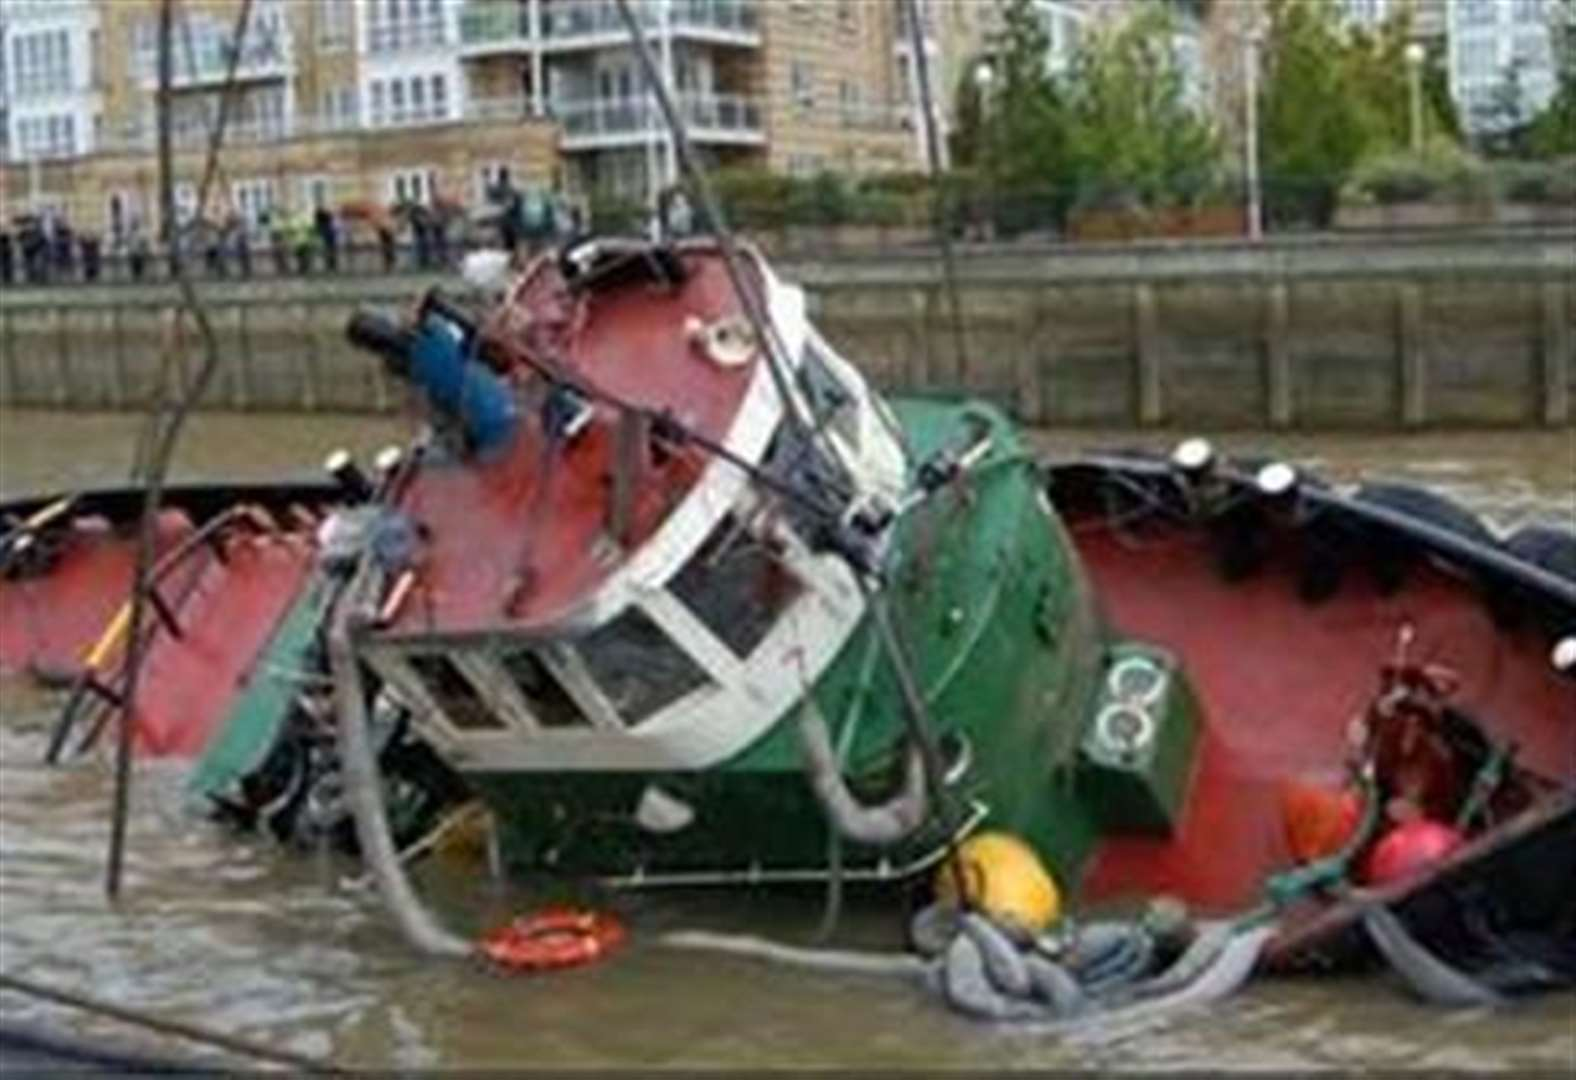 Tugboat captain on trial after engineer drowned